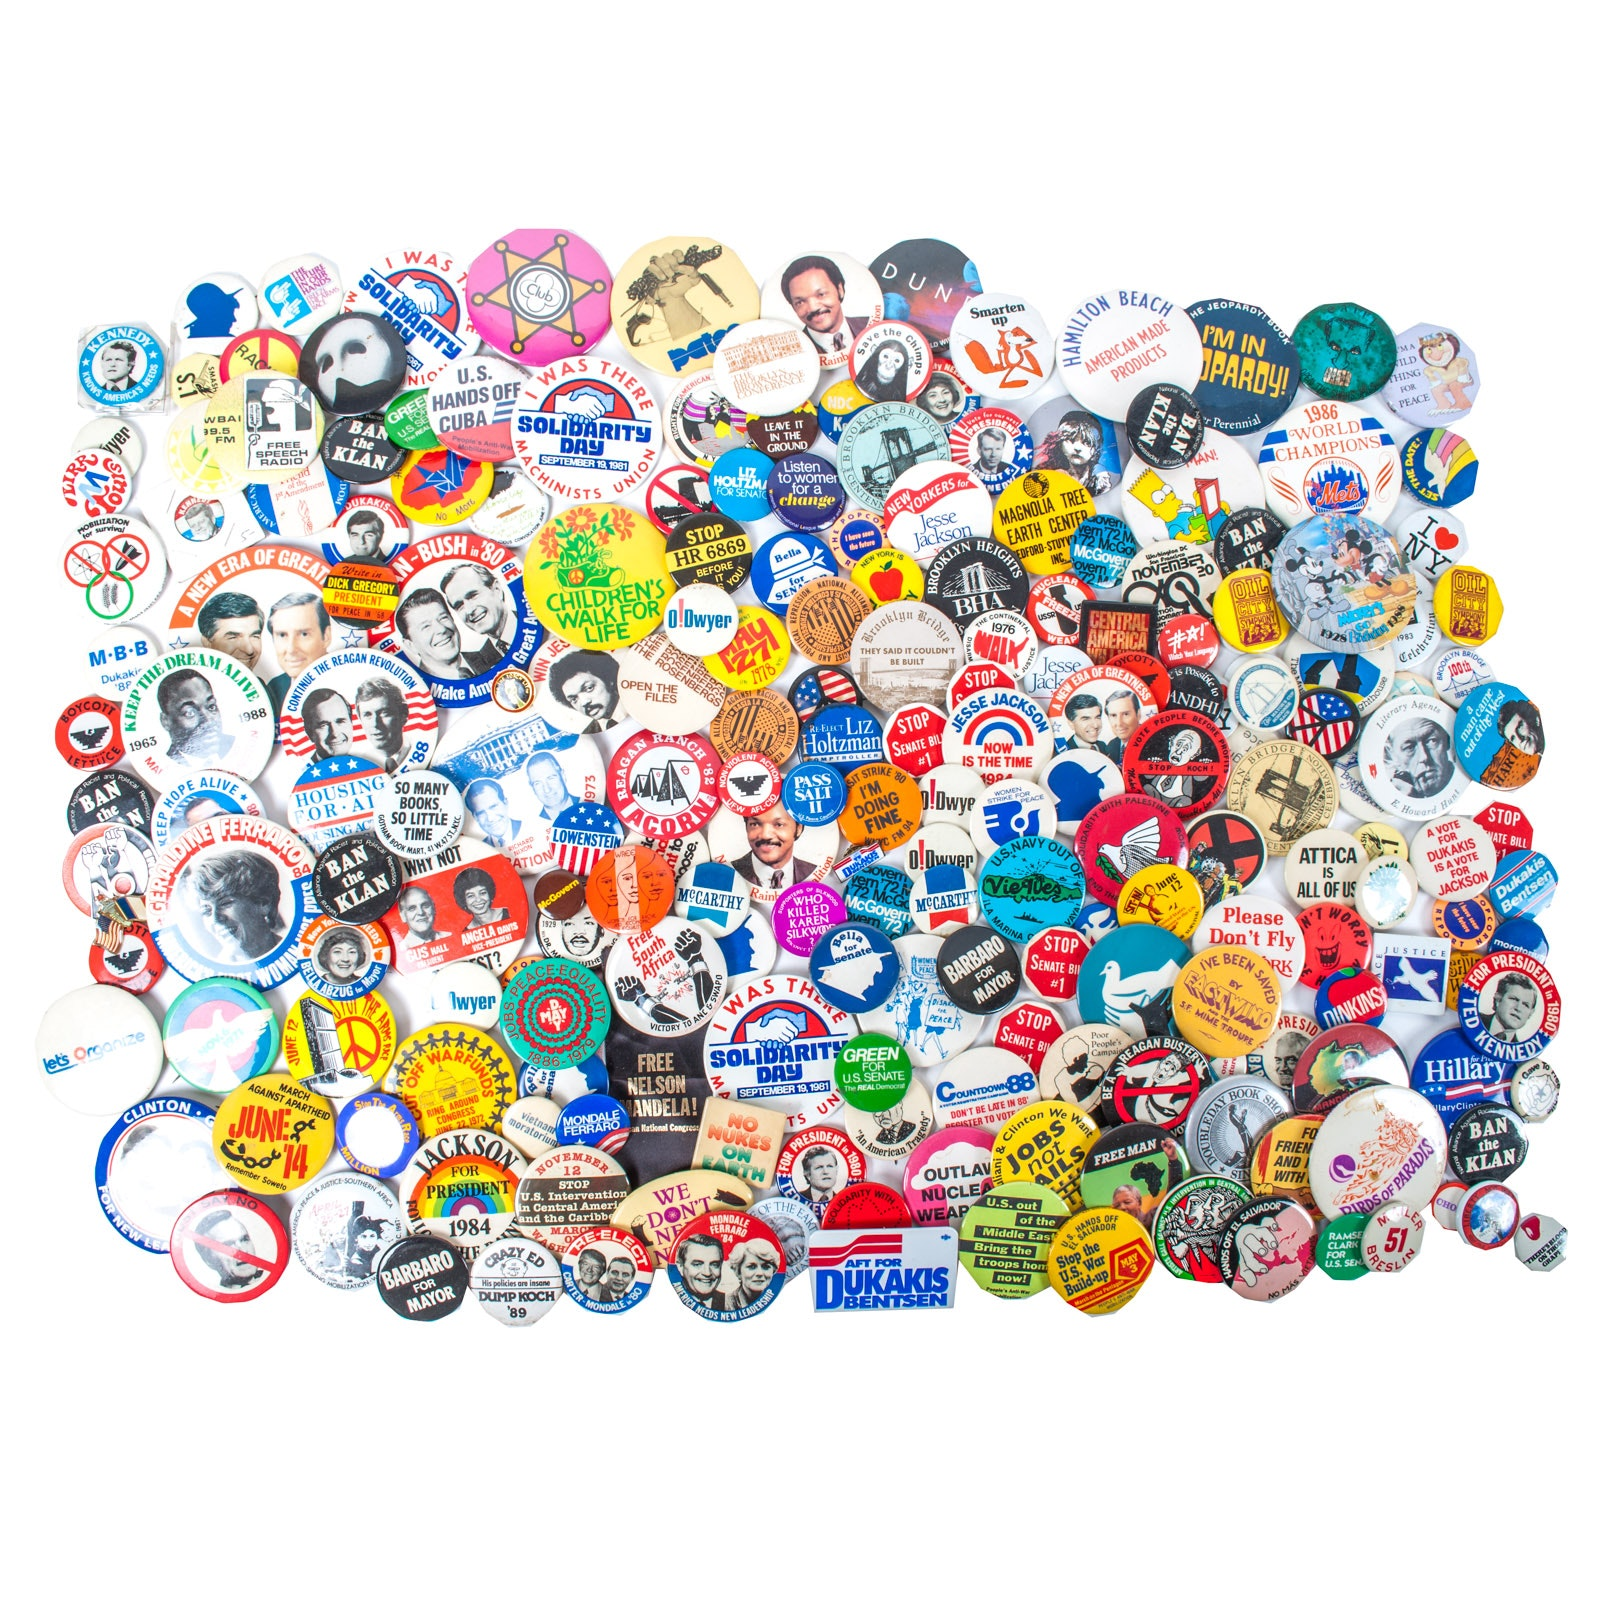 Large Assortment of Vintage and Contemporary Political Buttons